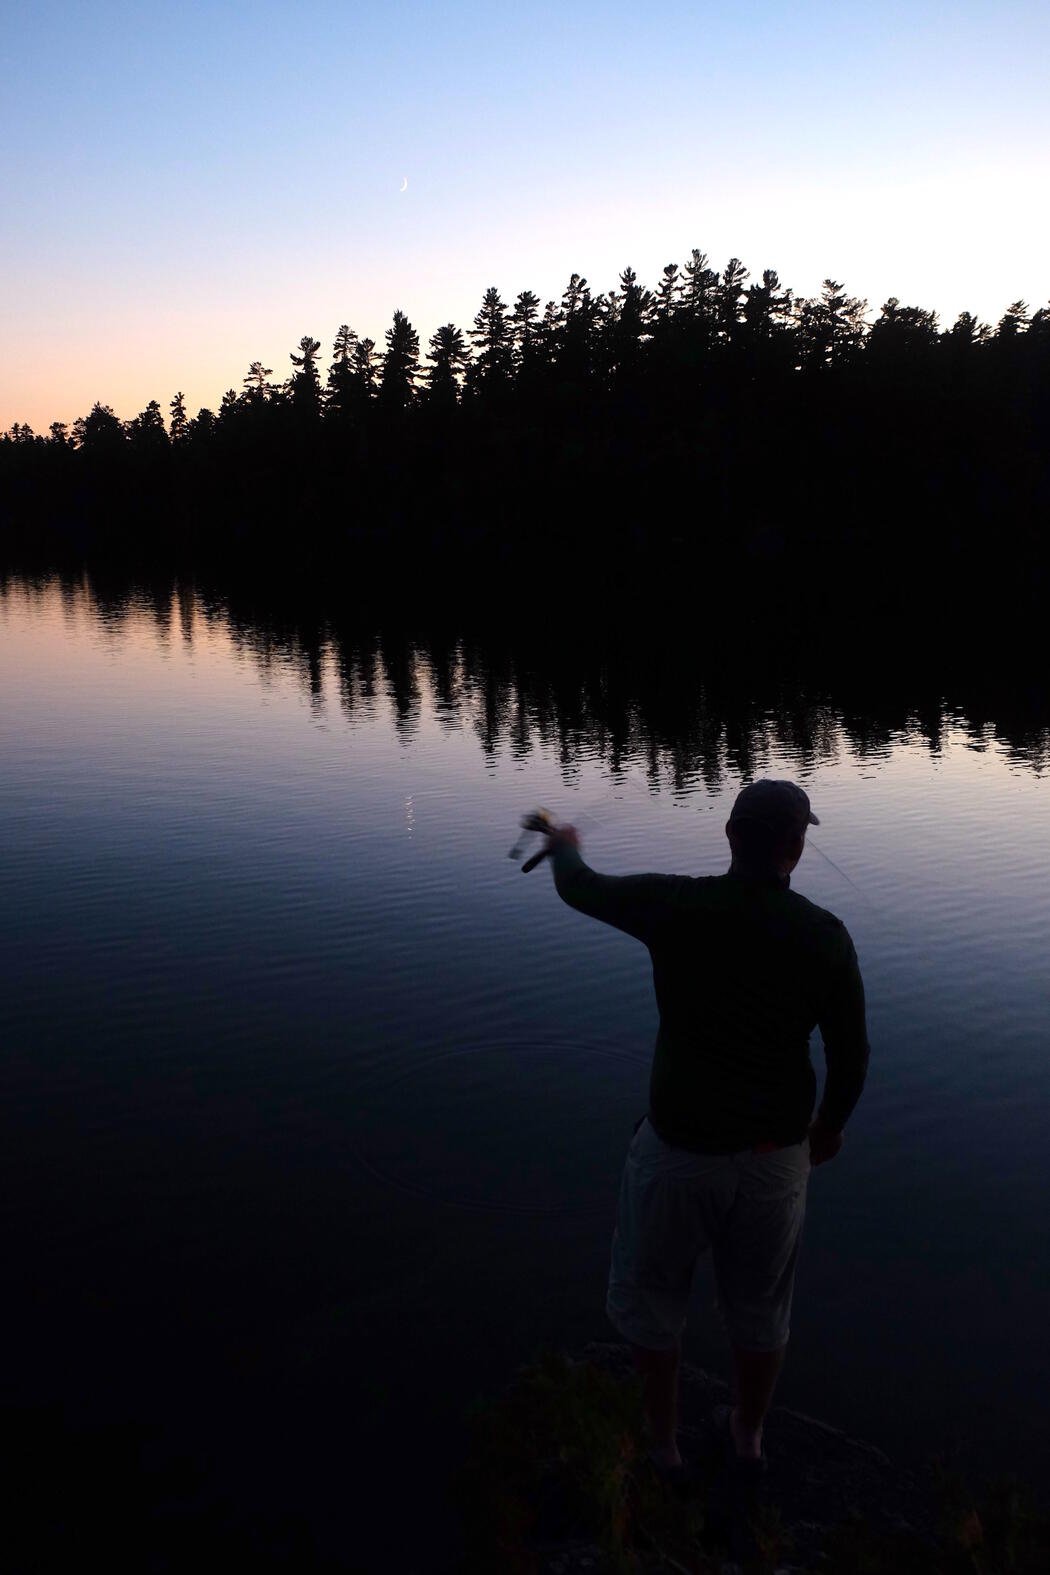 Man fishing during the twilight hours.